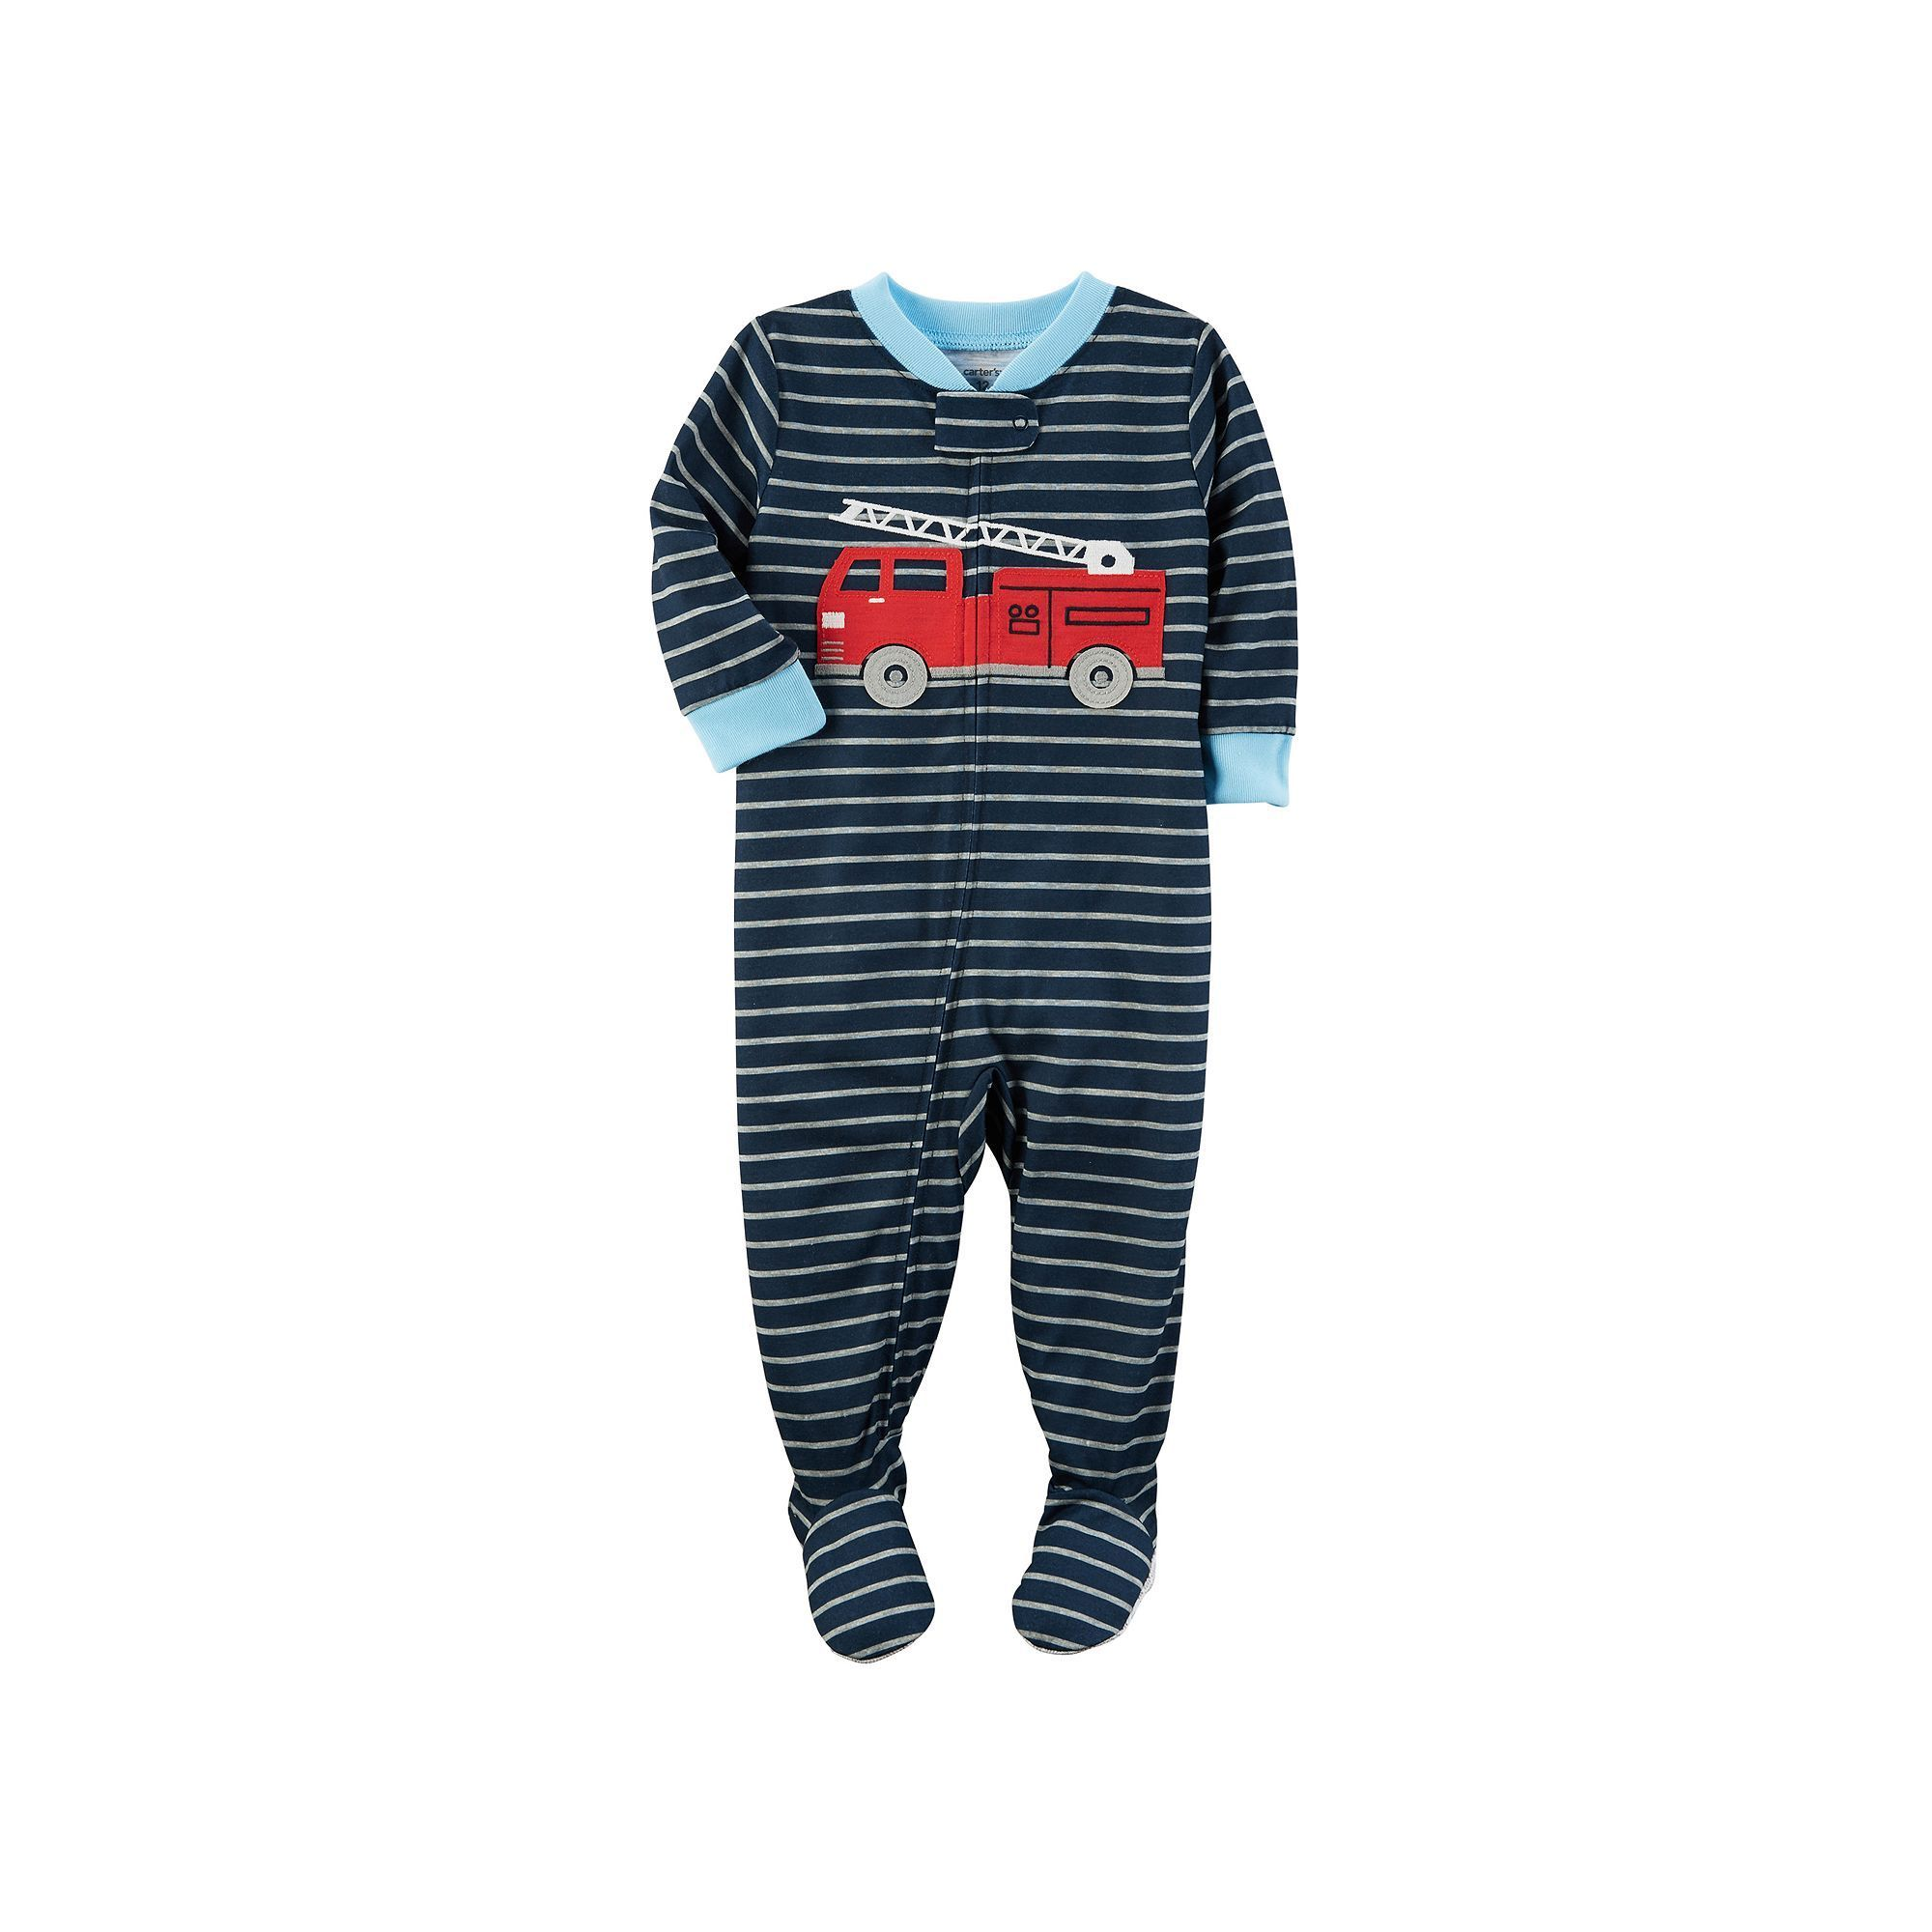 Baby Boy Carter s Fire Engine Striped Footed Pajamas Navy Firetruck